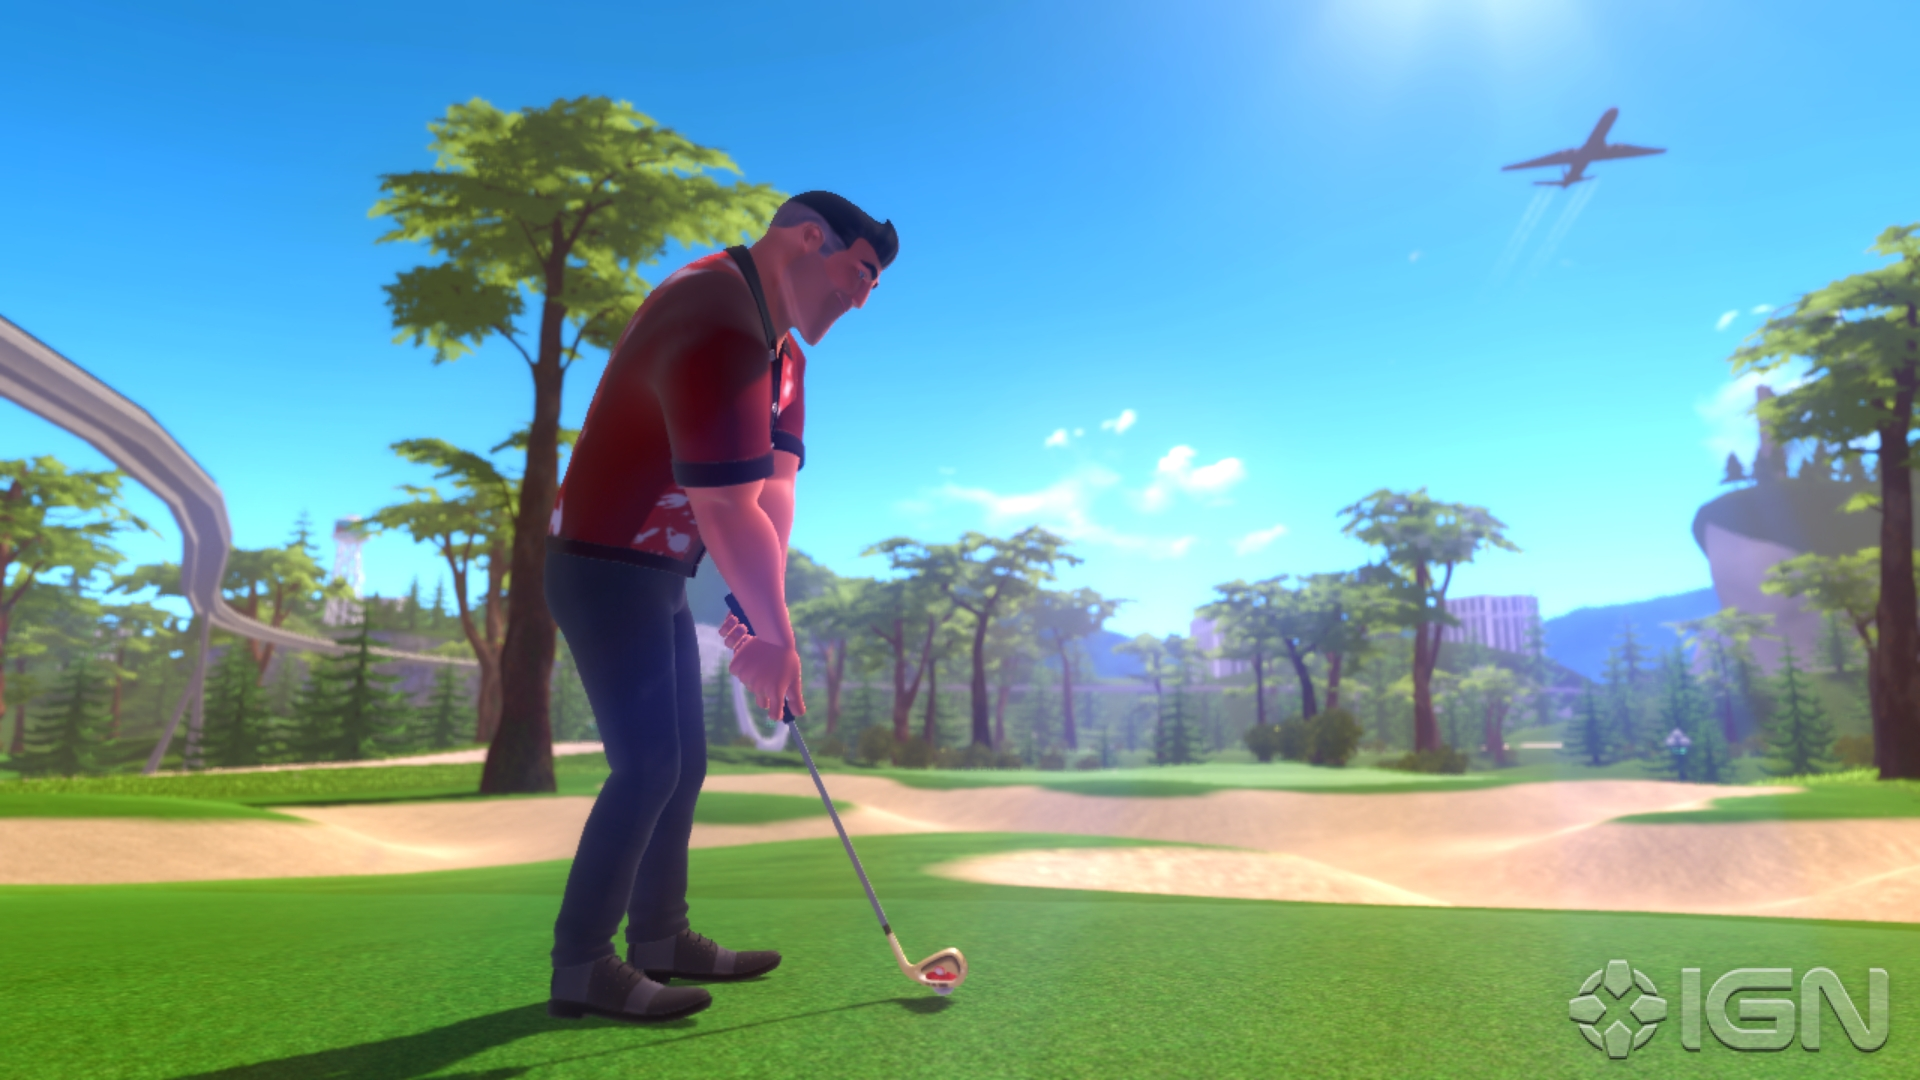 Powerstar Golf Screenshots Pictures Wallpapers   Xbox One   IGN 1920x1080